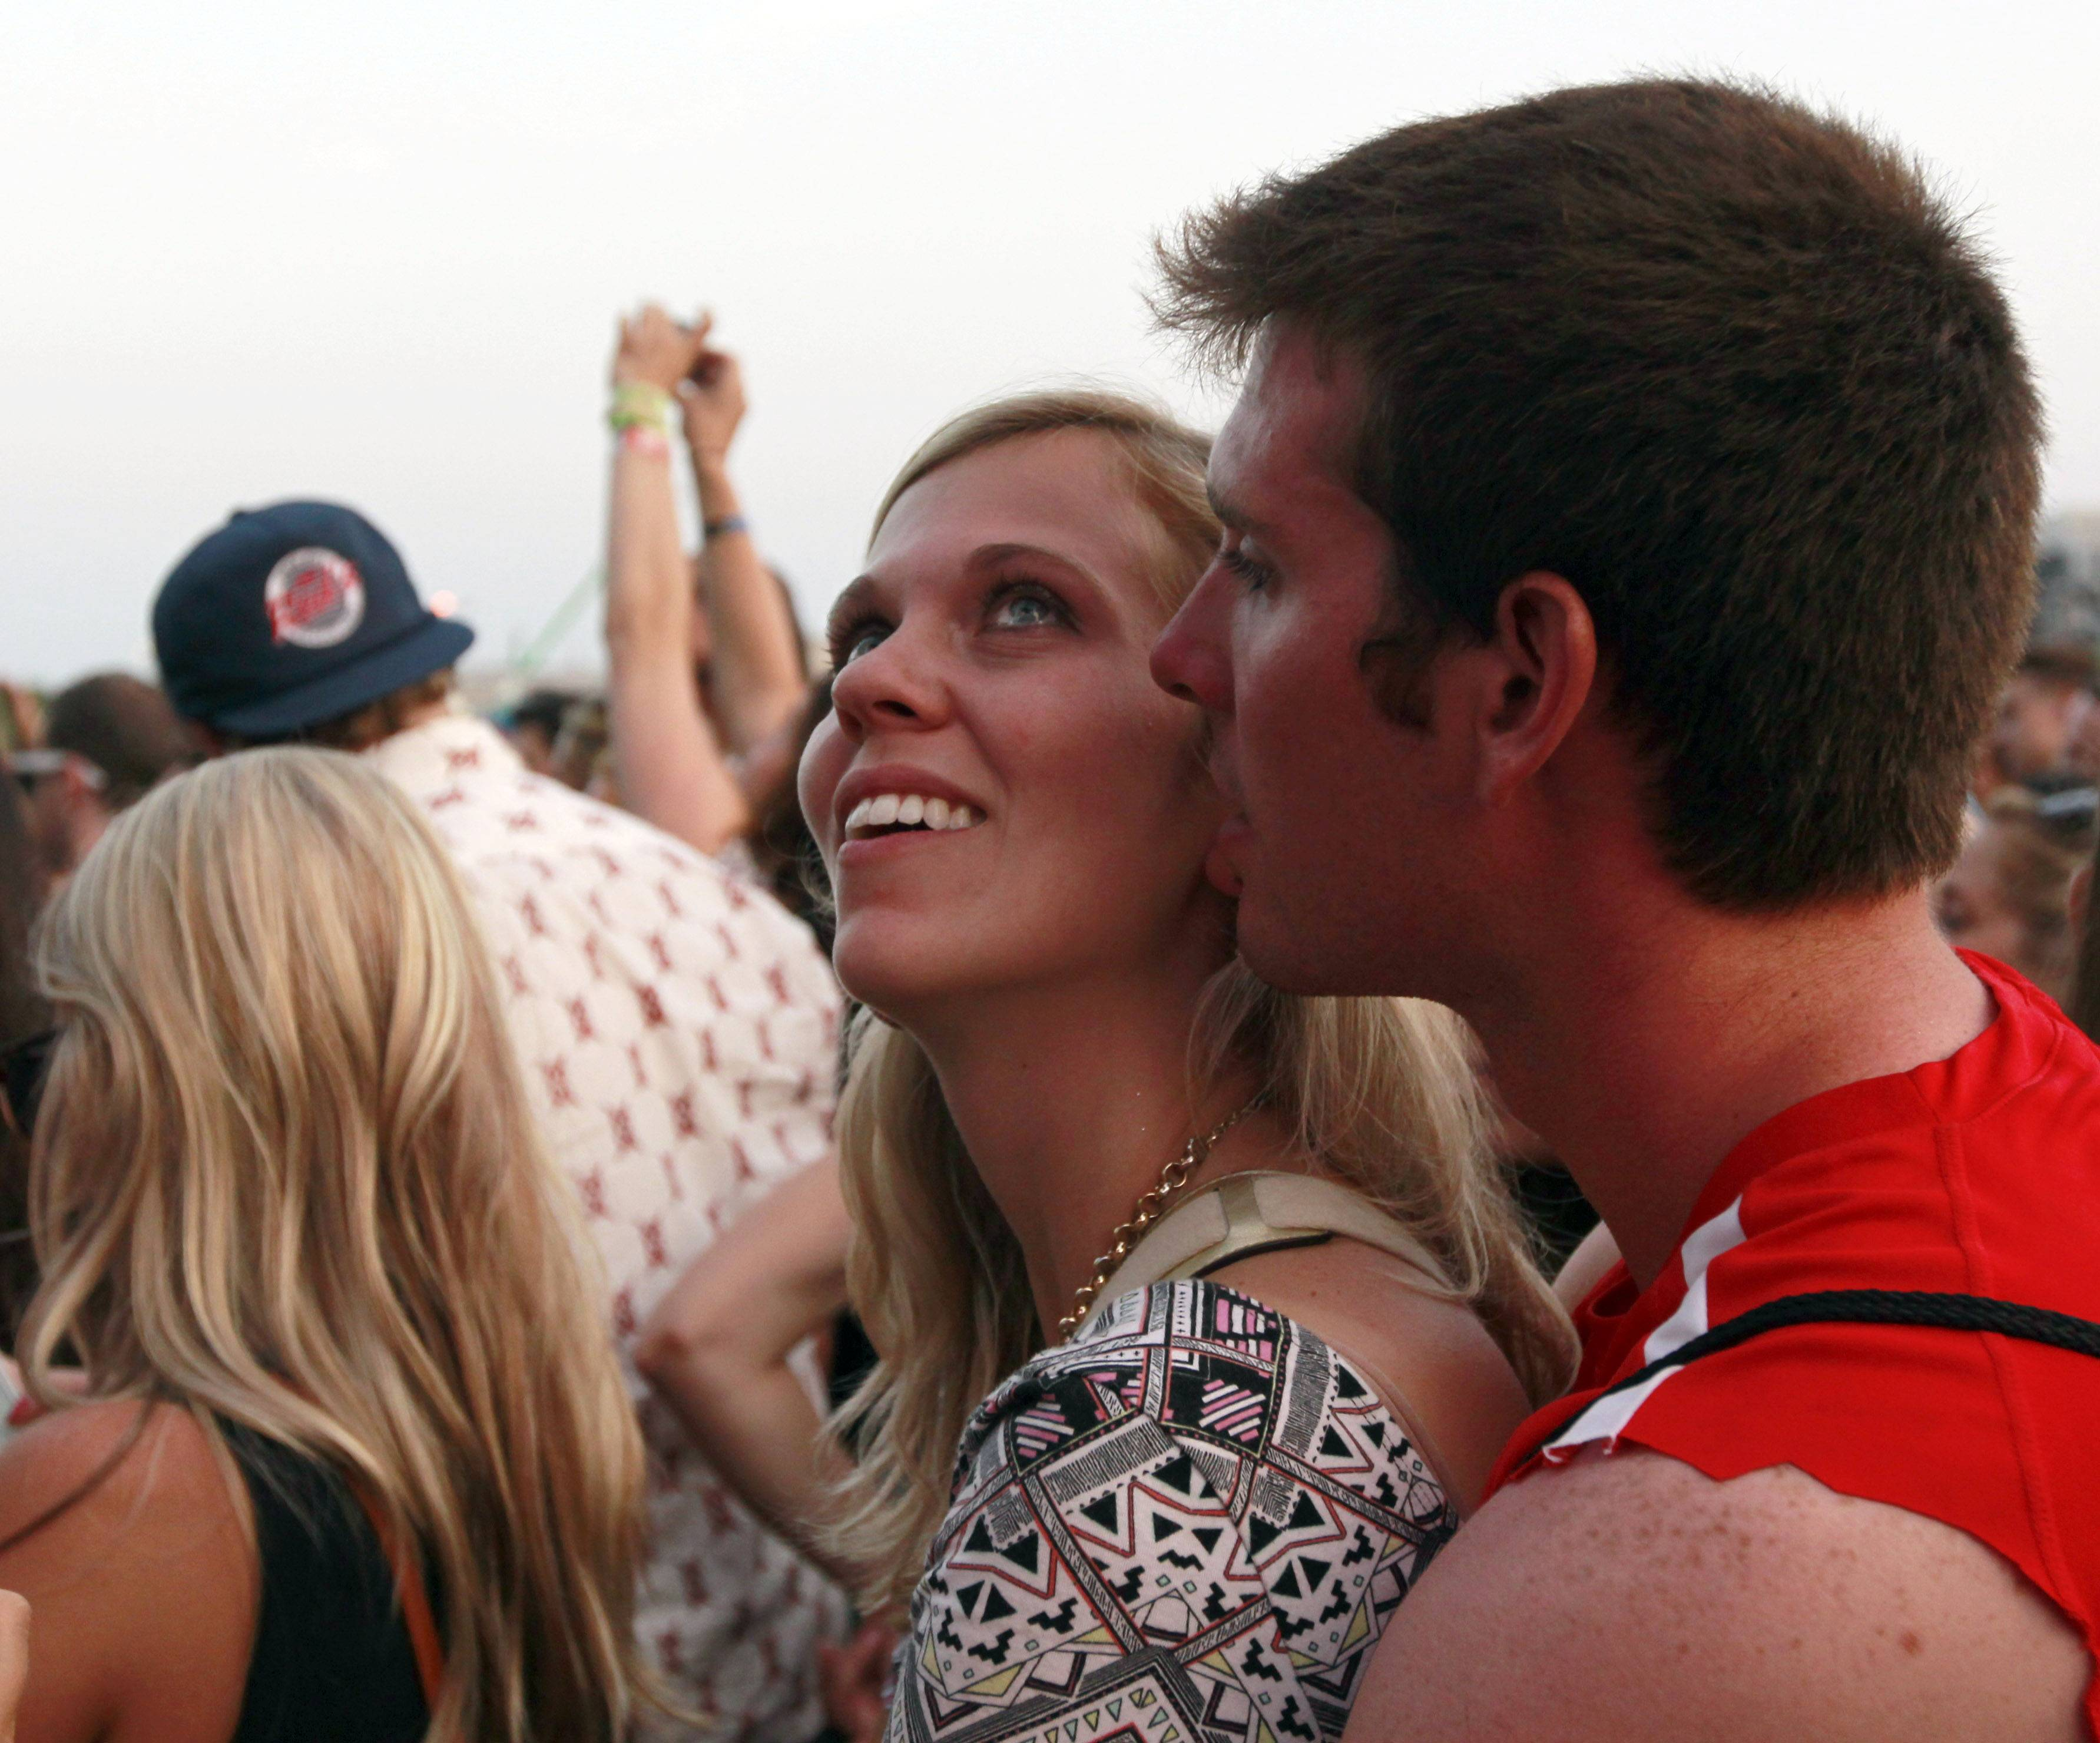 A couple listen to the Head and the Heart during the second day of Lollapalooza on Saturday in Chicago.